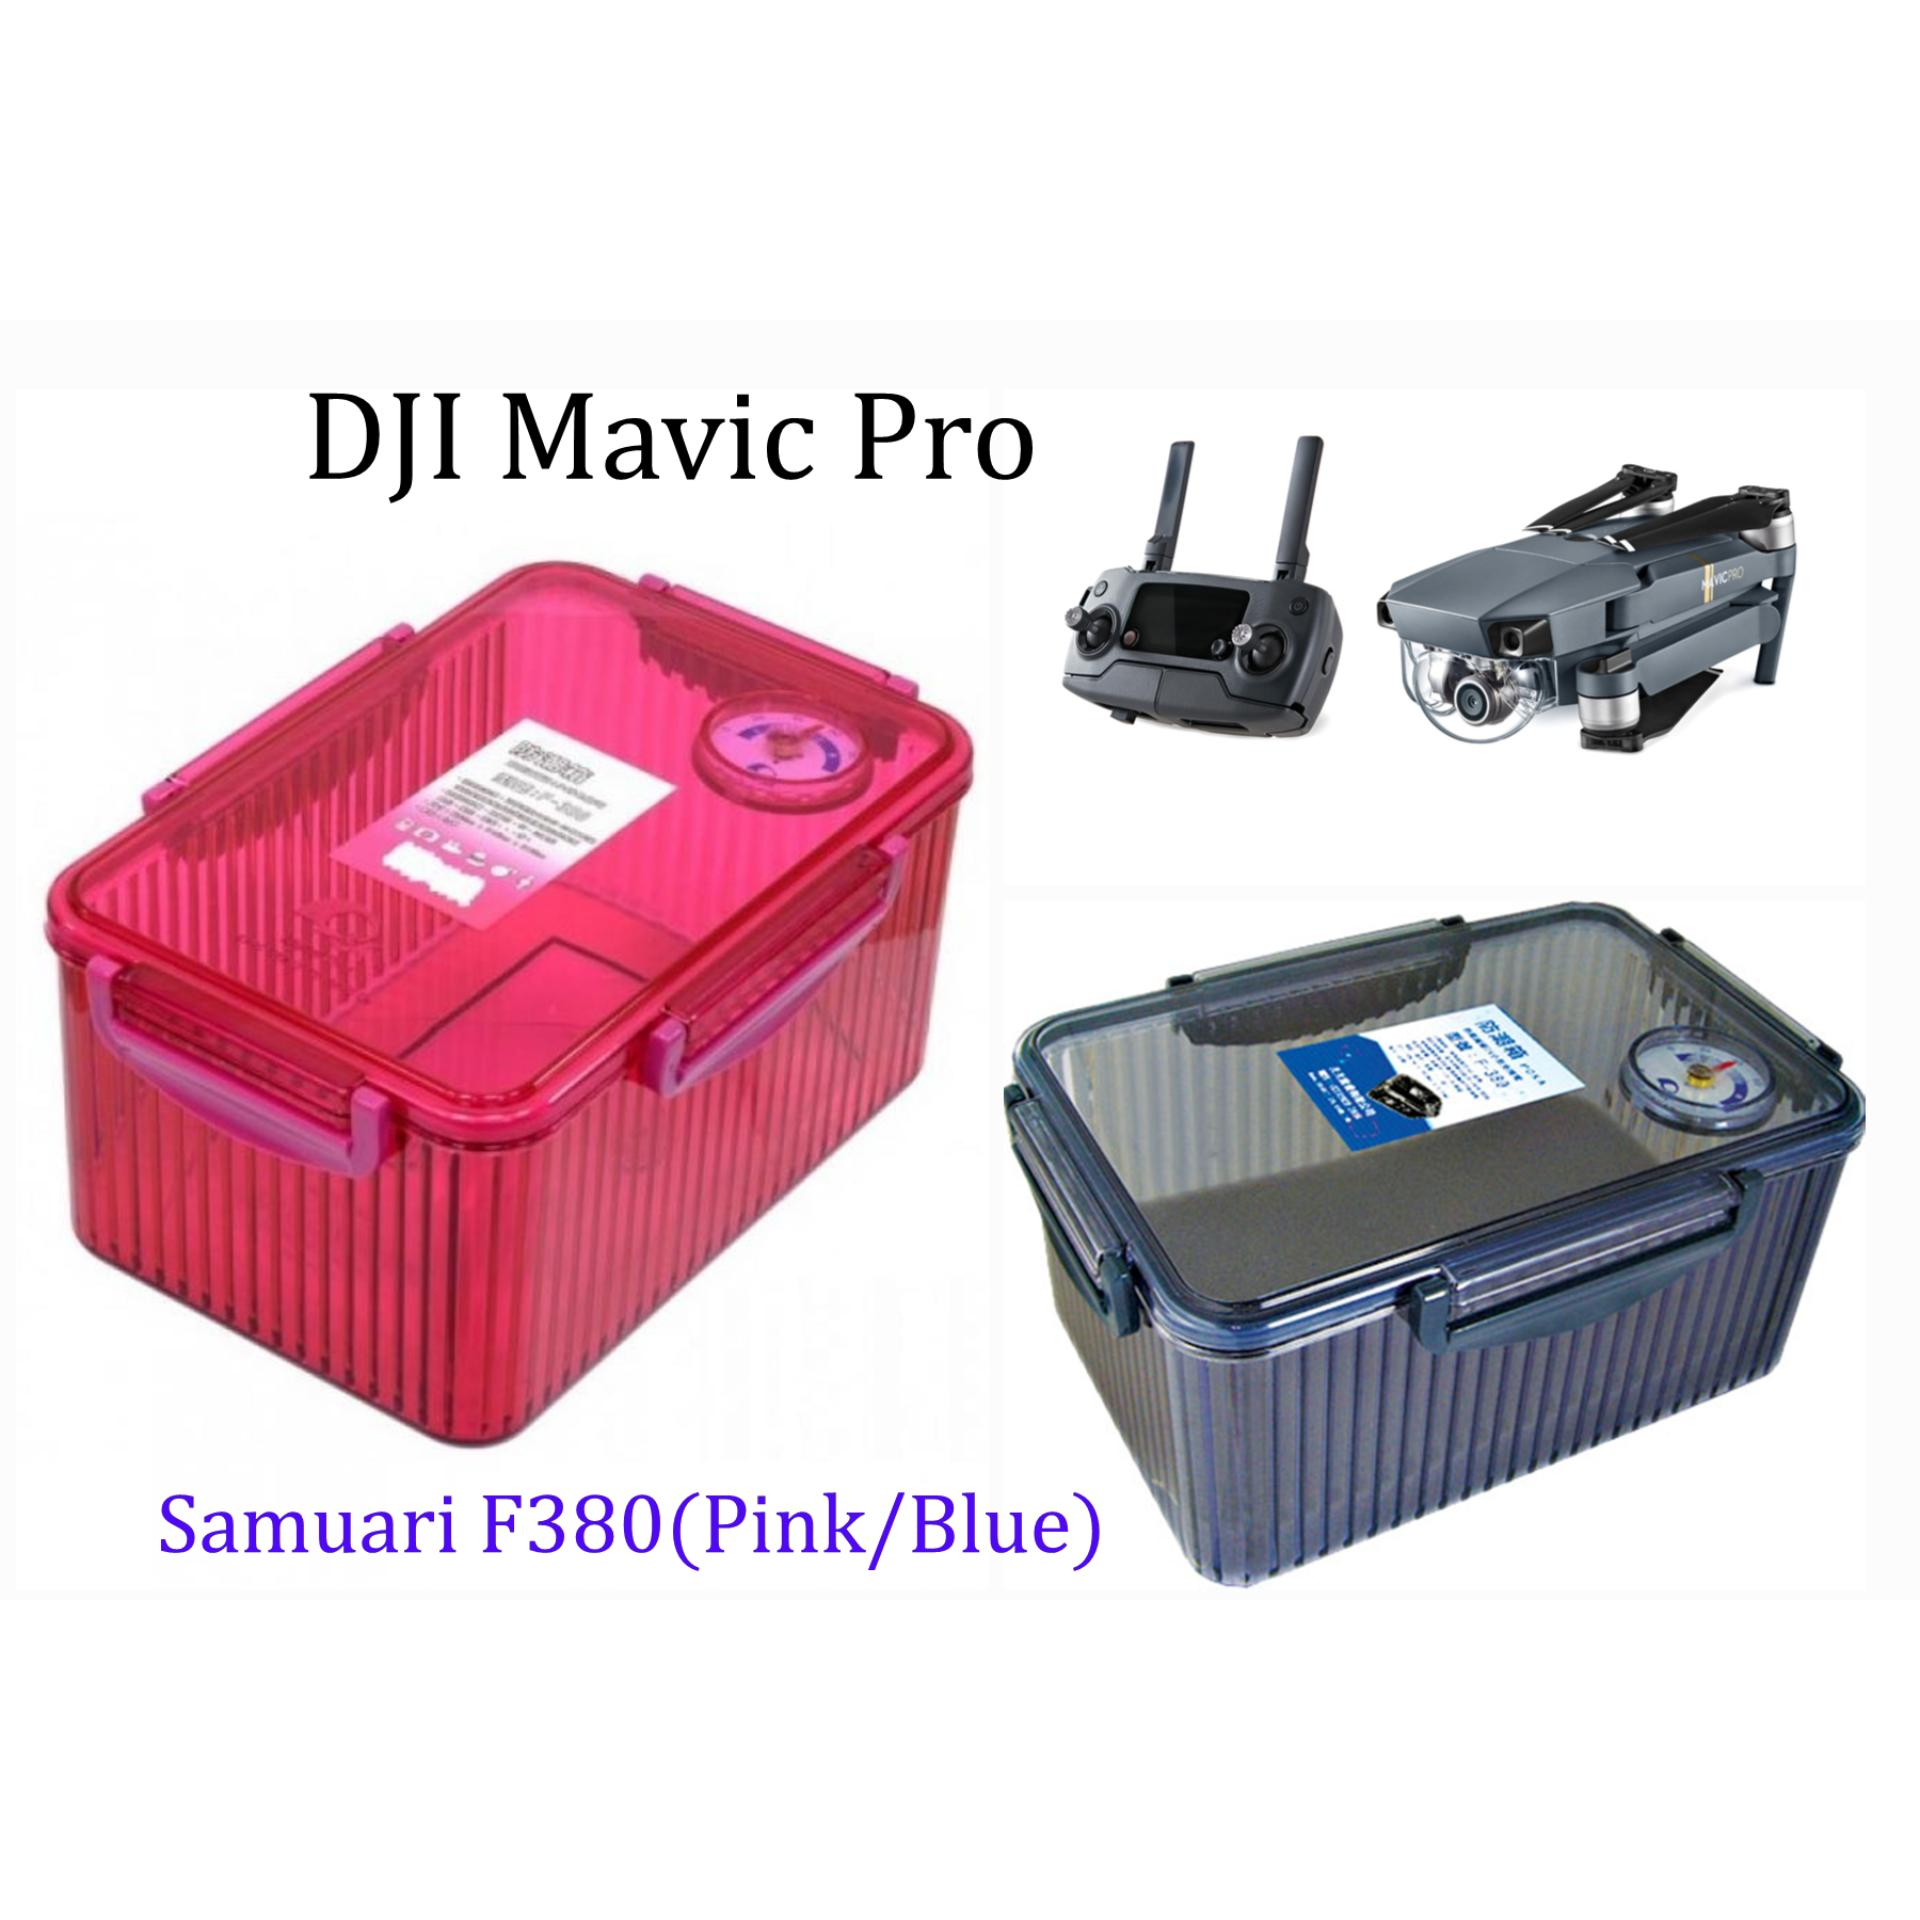 DJI Mavic Pro With Free Samurai Dry Box F380